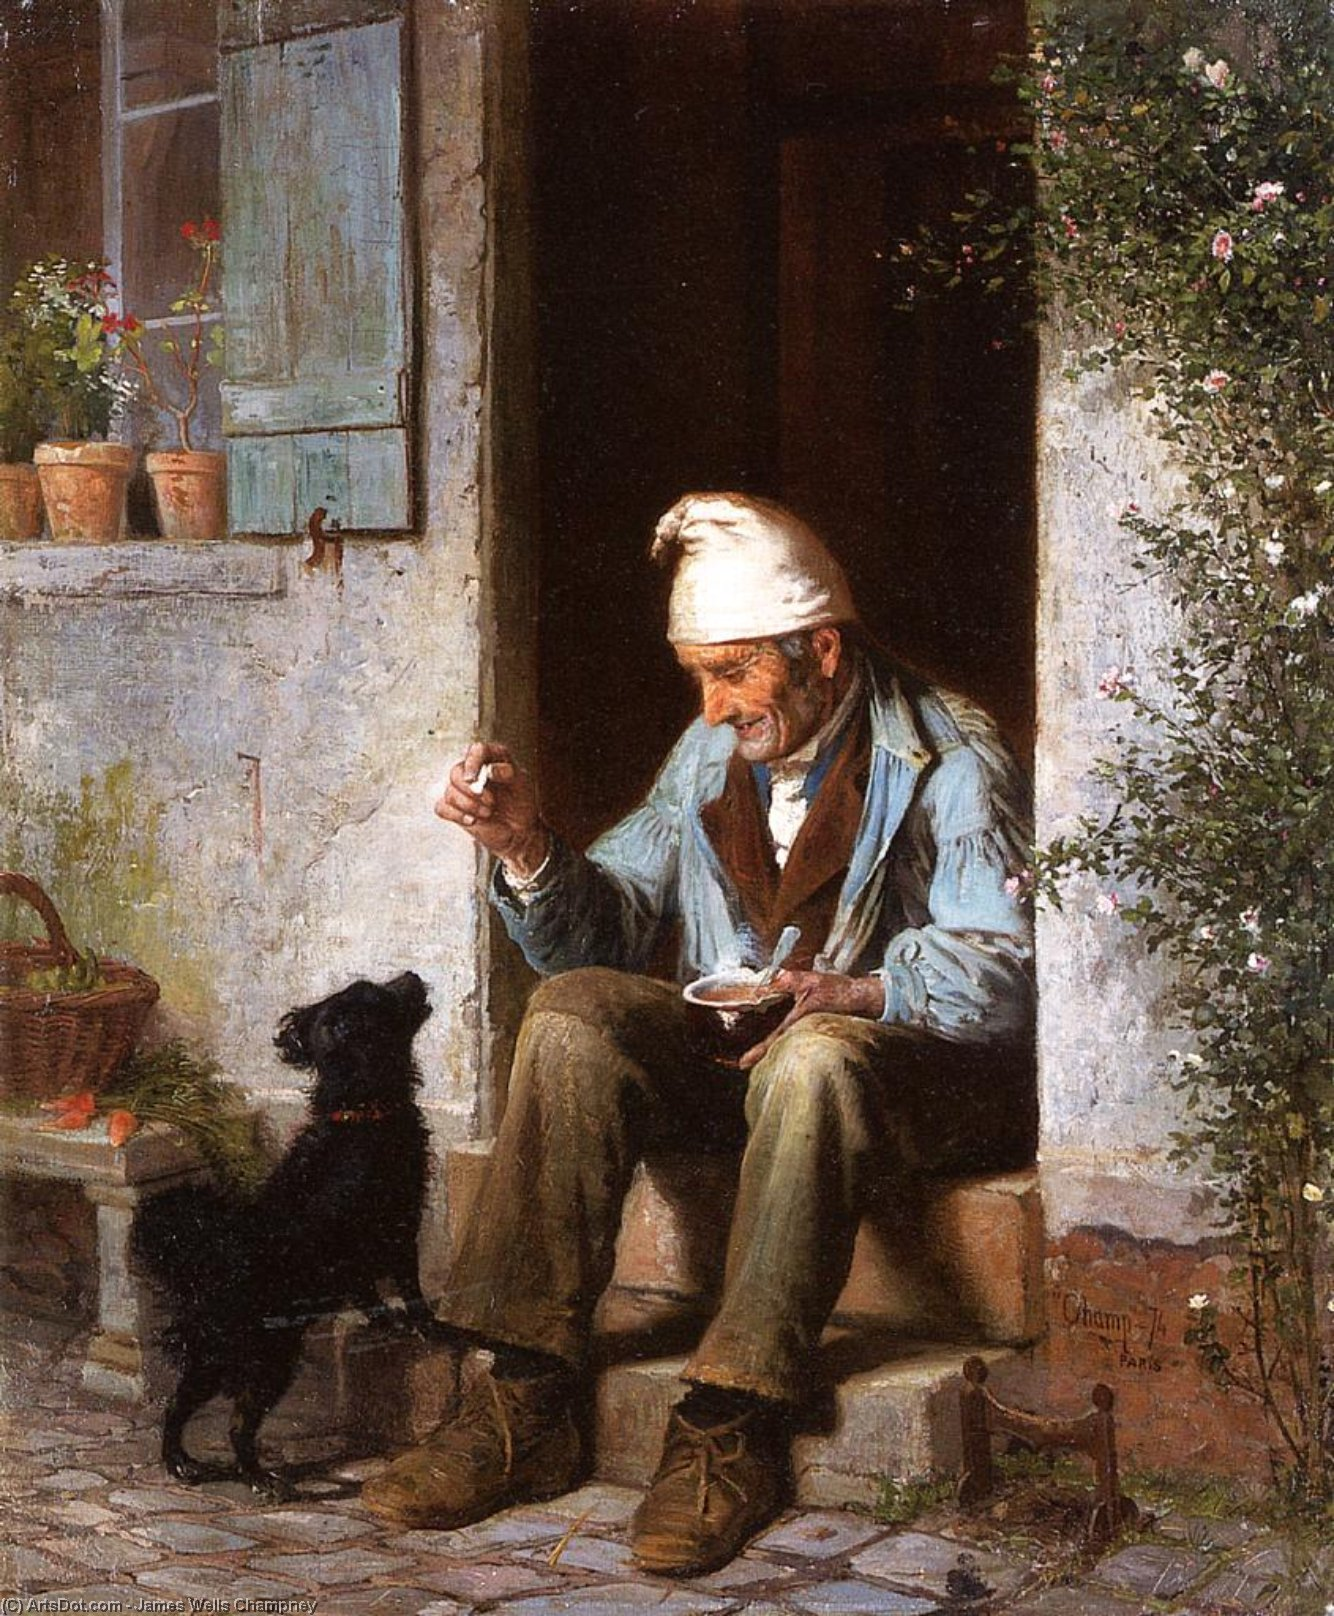 Buy Museum Art Reproductions : The Little Beggar, 1874 by James Wells Champney (1843-1903, United States) | ArtsDot.com